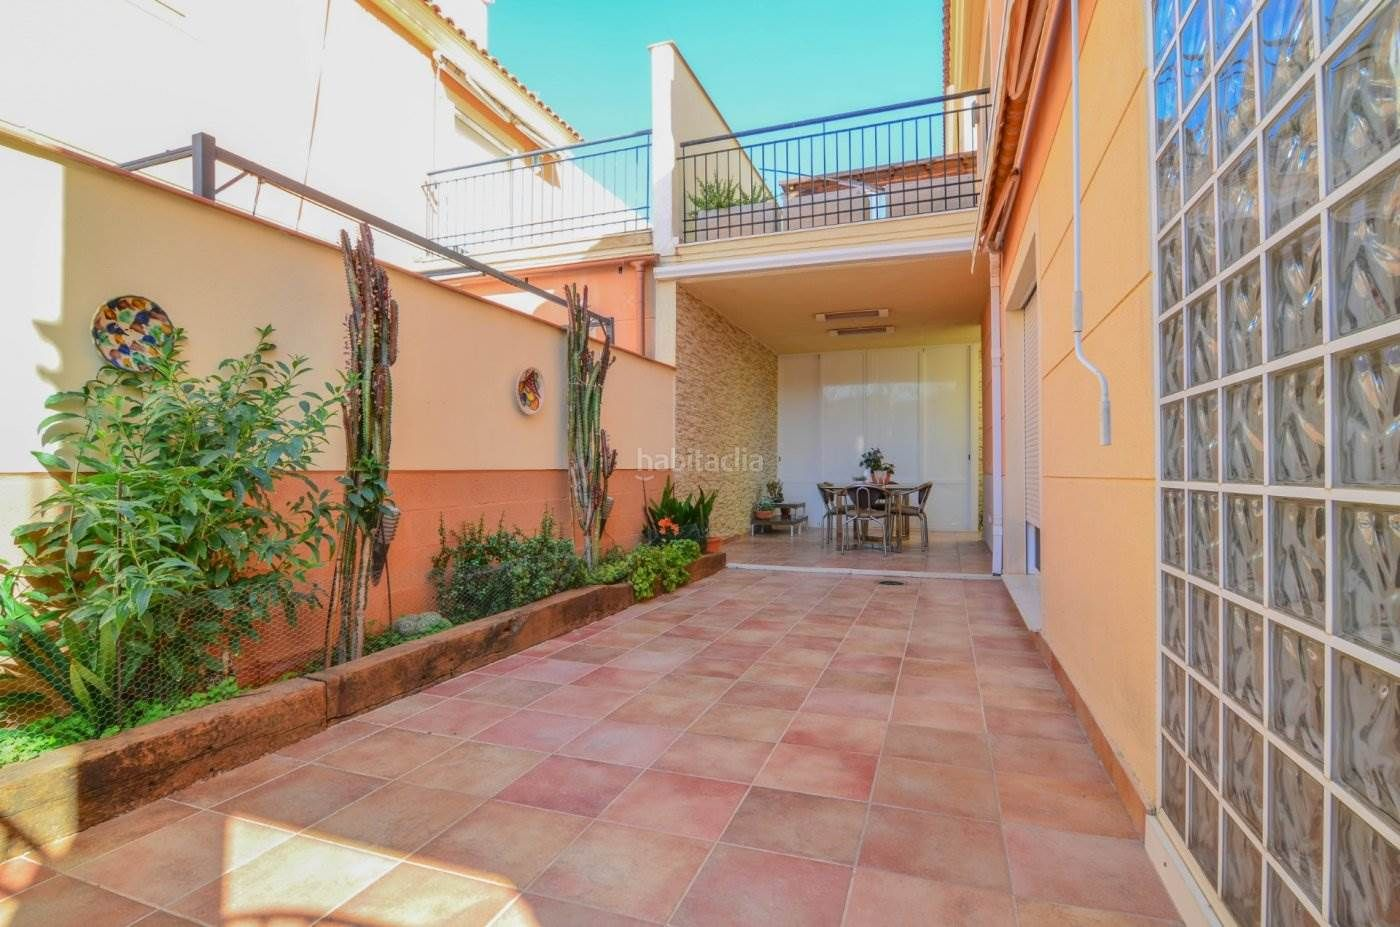 Semi detached house in Albuixech. Adosado a la venta en albuixech